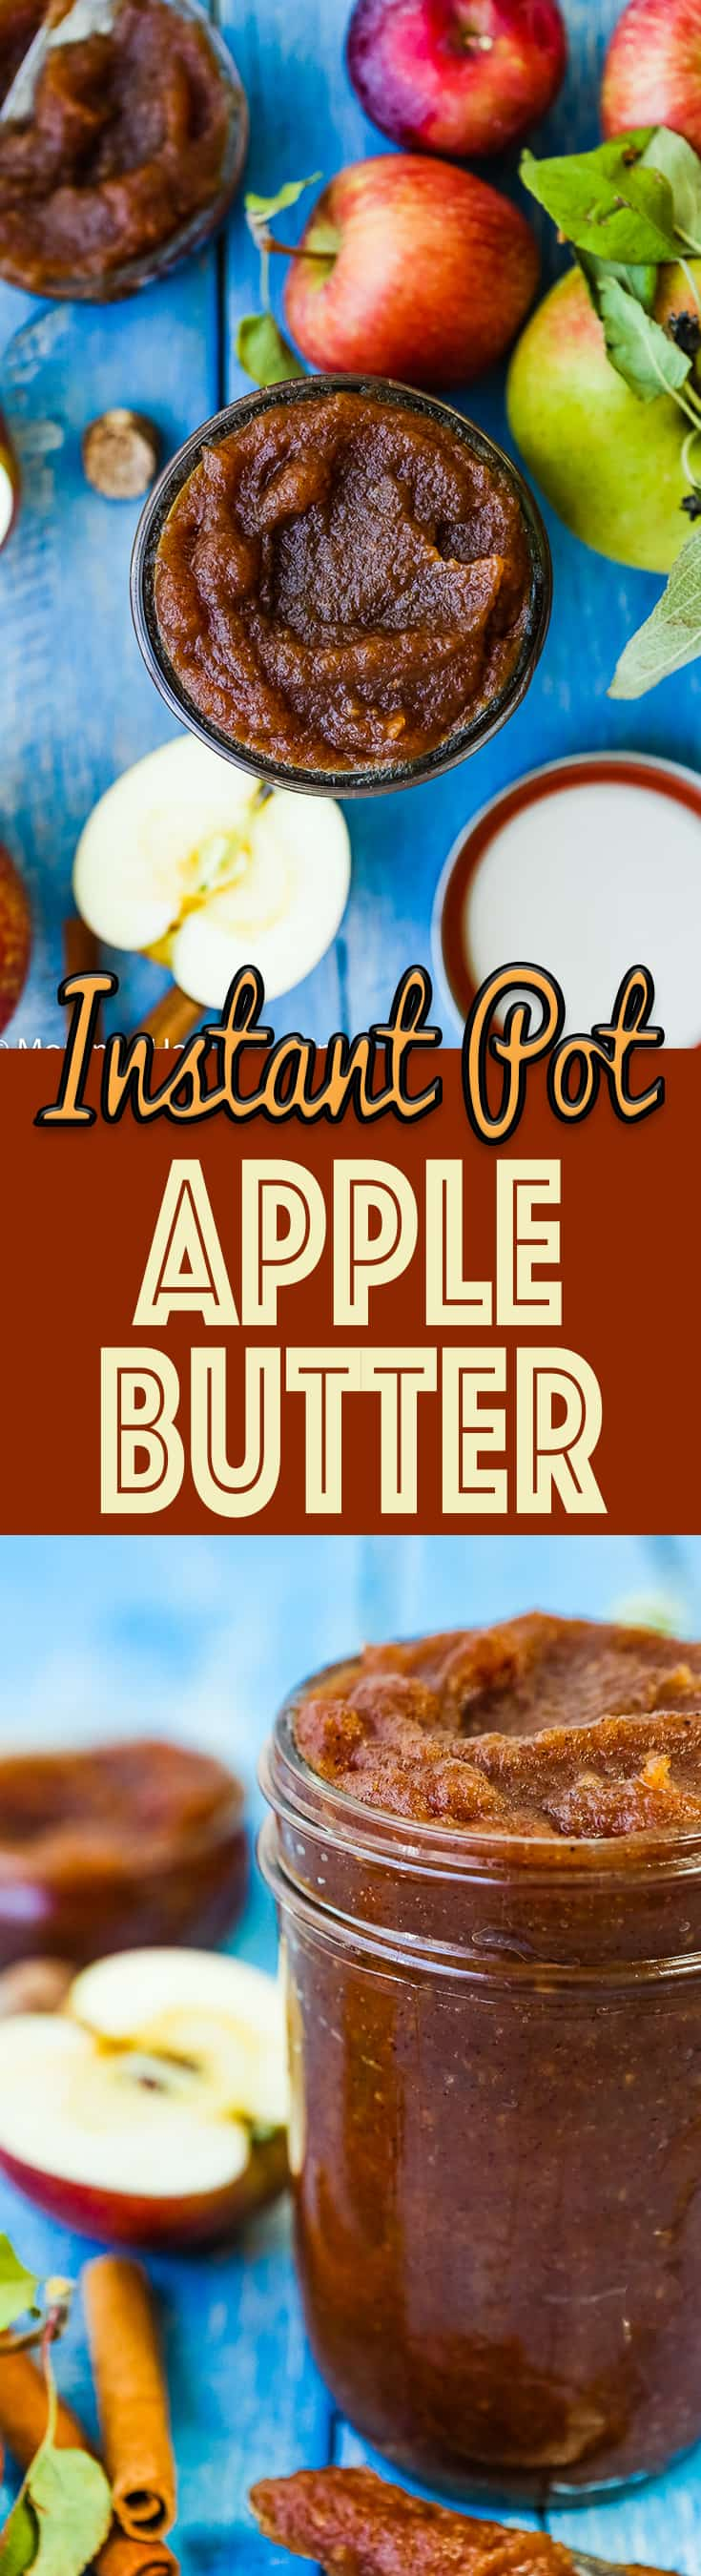 This Easy Instant Pot Apple Butter is tremendous velvety, smooth, spiced, and tasty. Perfect for spreading on toast, muffins, pancakes, crackers, etc. Ready in 20 minutes. It's pure apple goodness at its best. http://mommyshomecooking.com